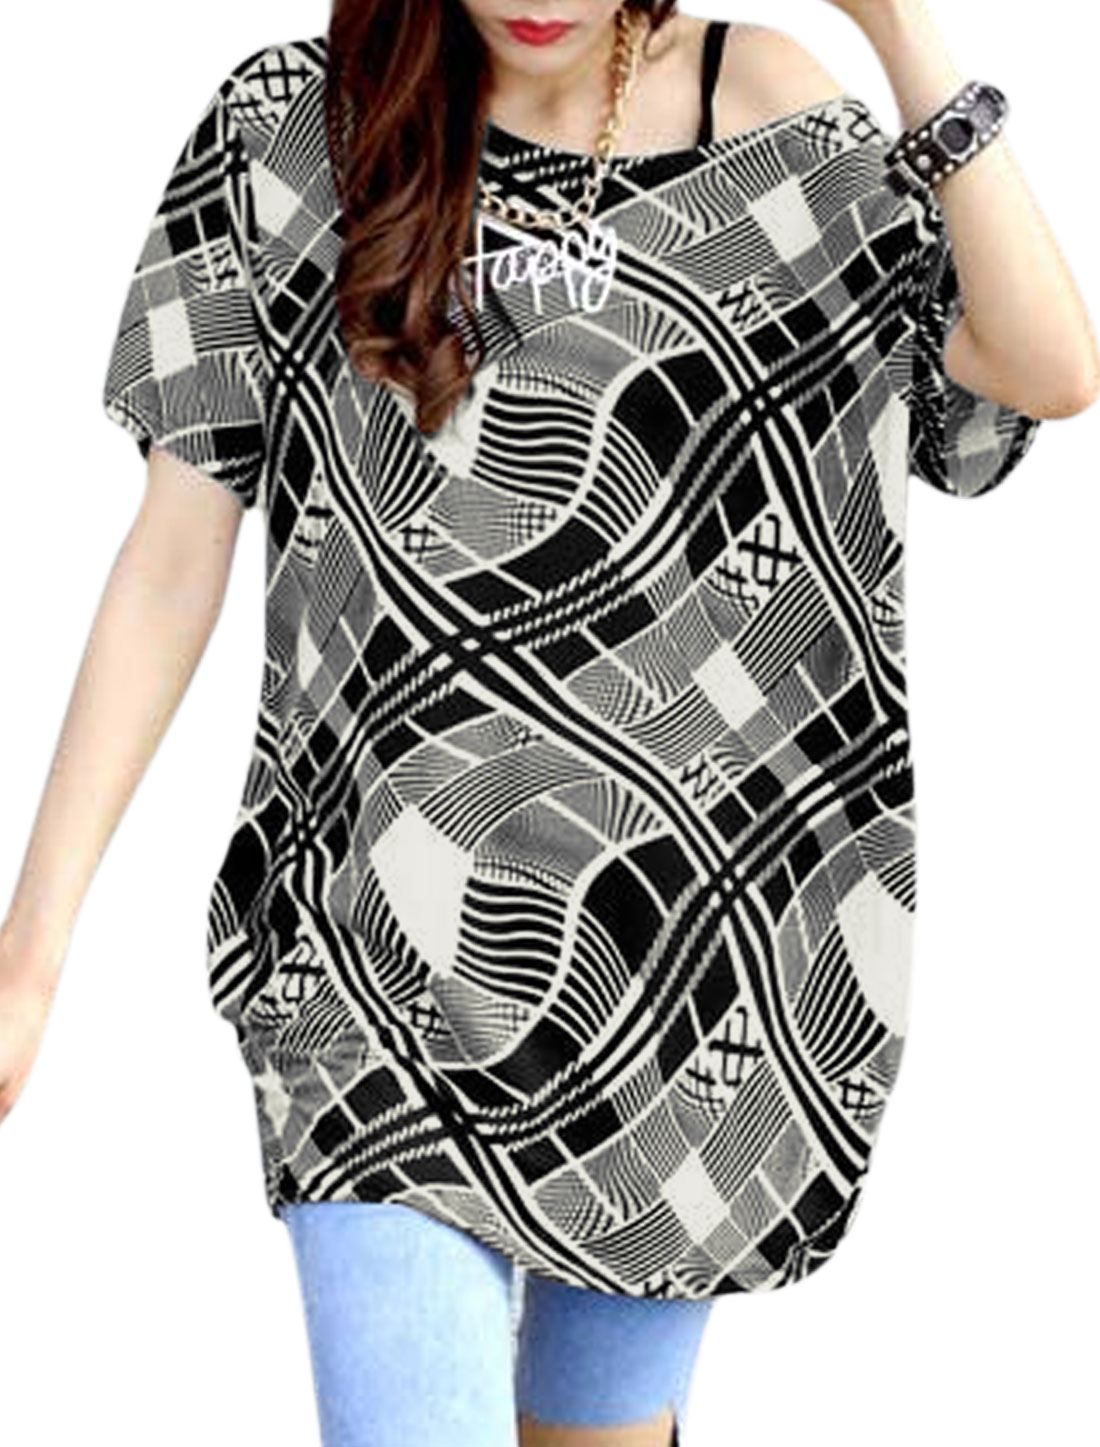 Woman Geometric Prints Ruched Sides Short Sleeves Tunic Top Black White S